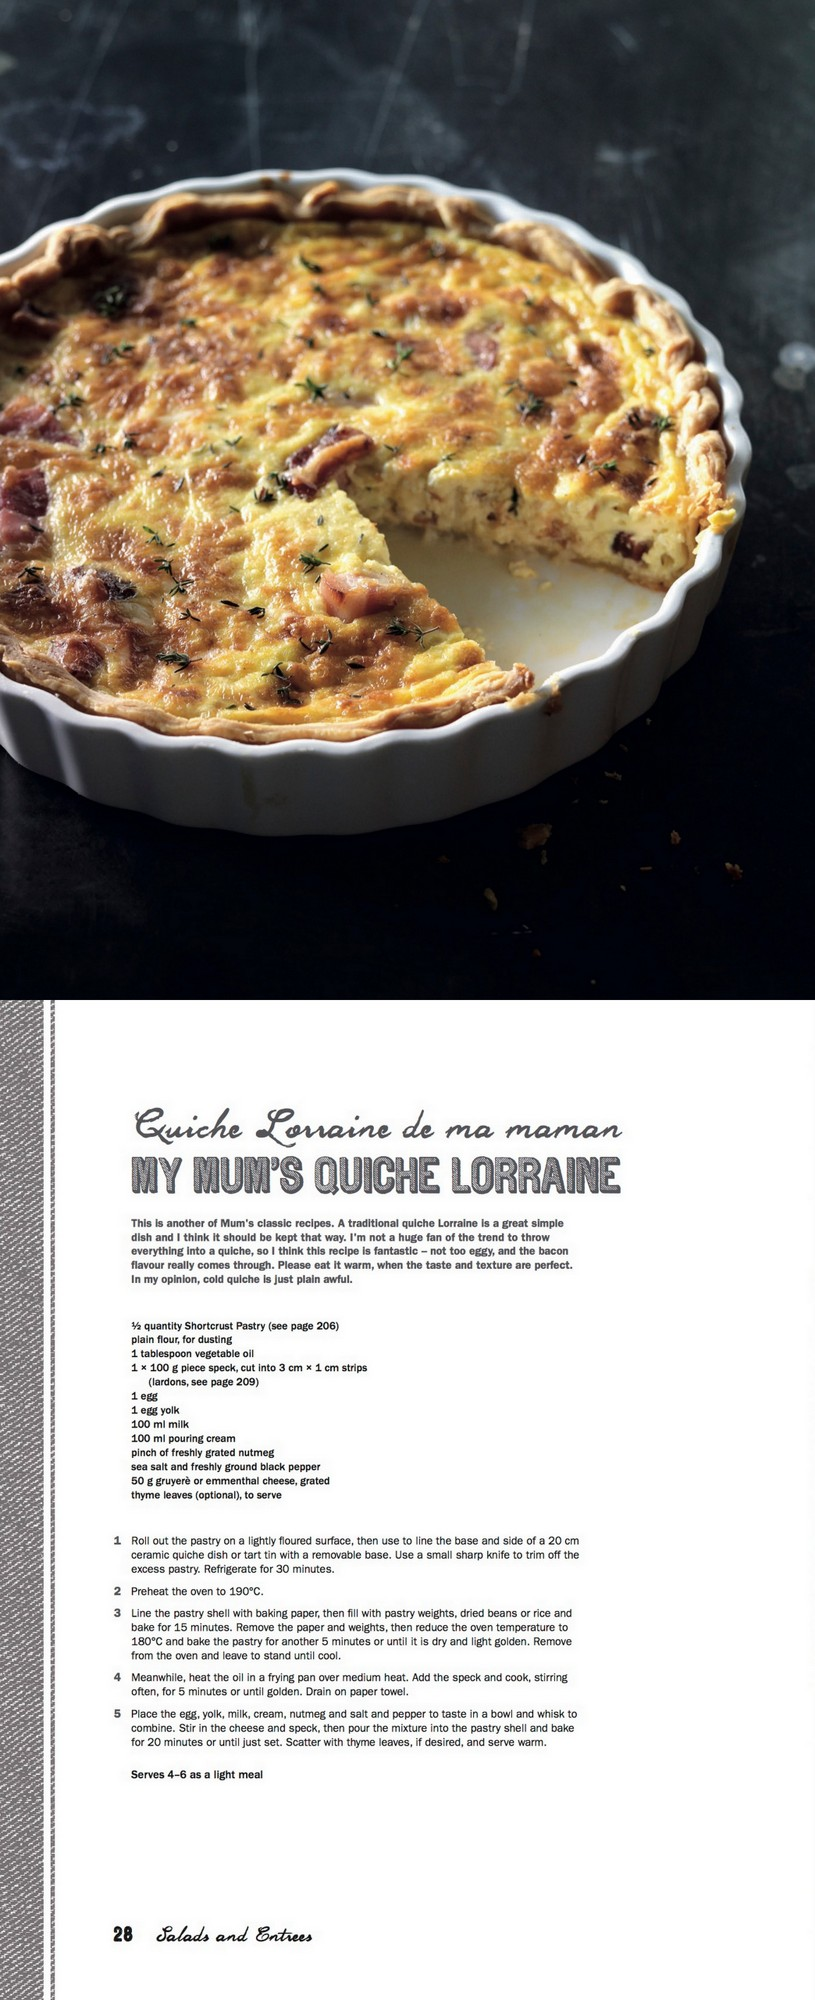 Manu's French Kitchen - Quiche